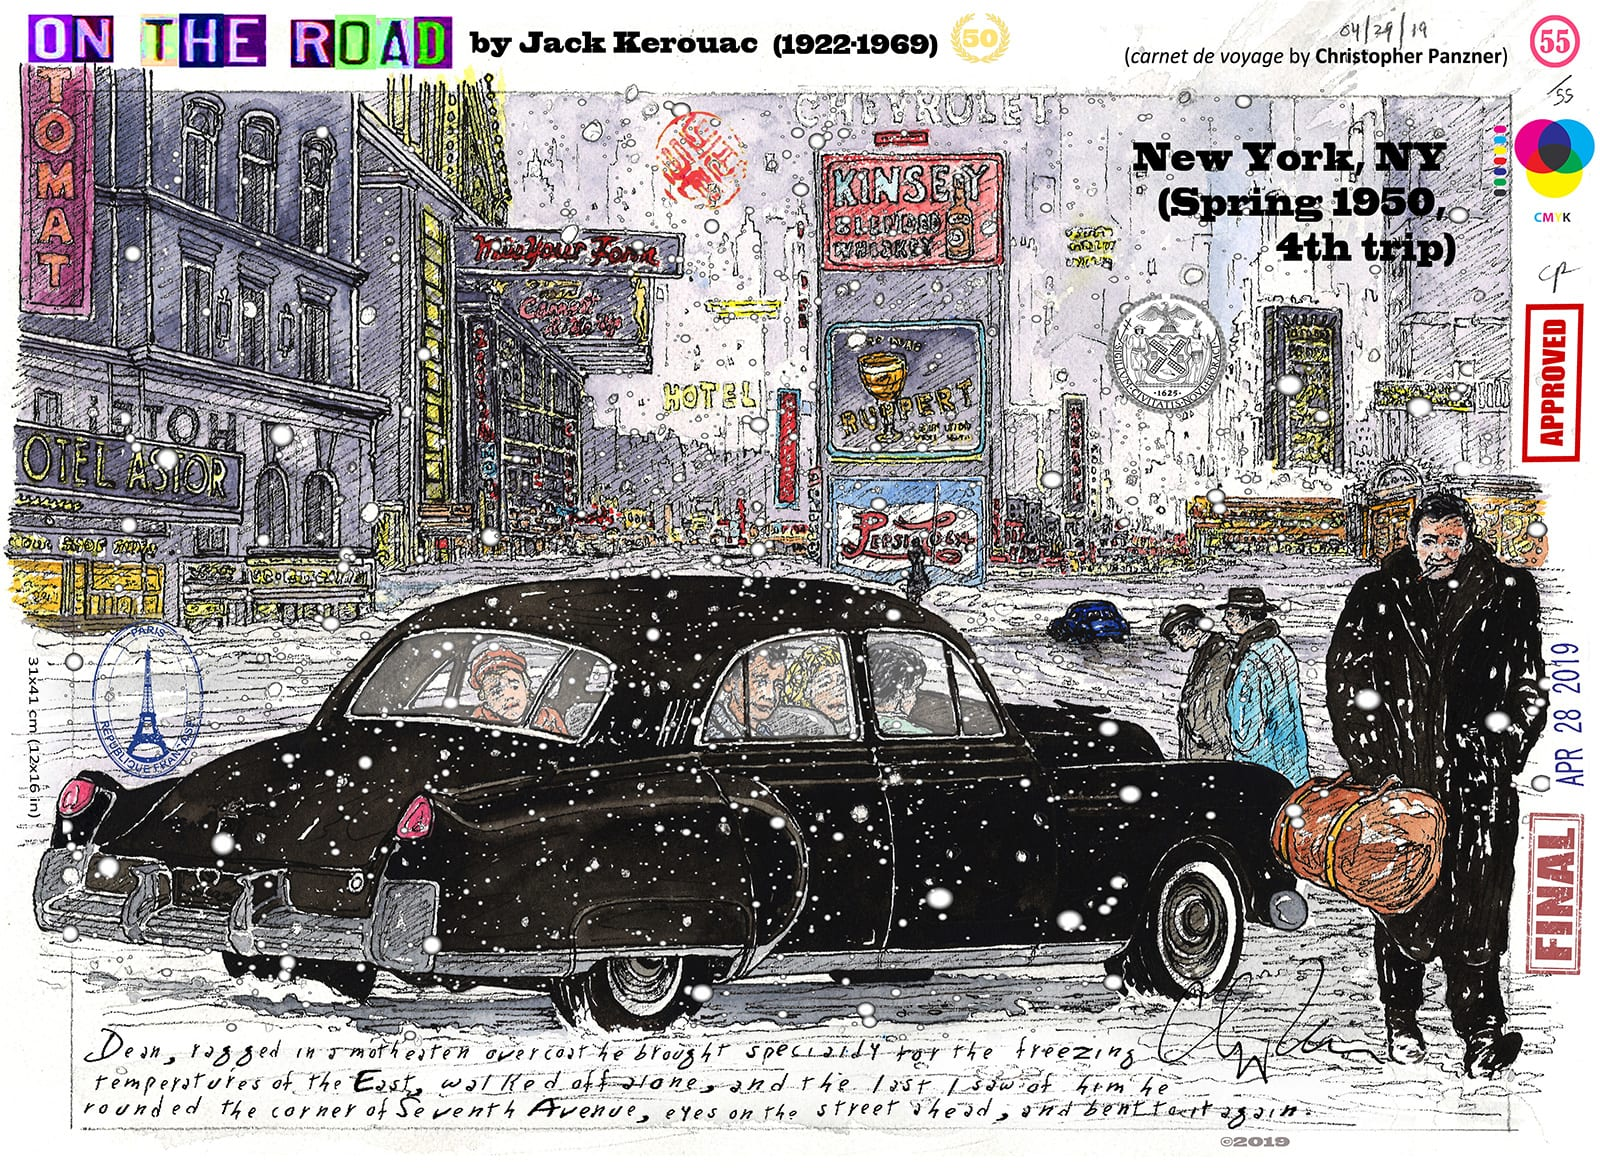 The-Illustrated-On-the-Road-(OTR-#55)-for-jackkerouac.com-(C.-Panzner-©-2019)